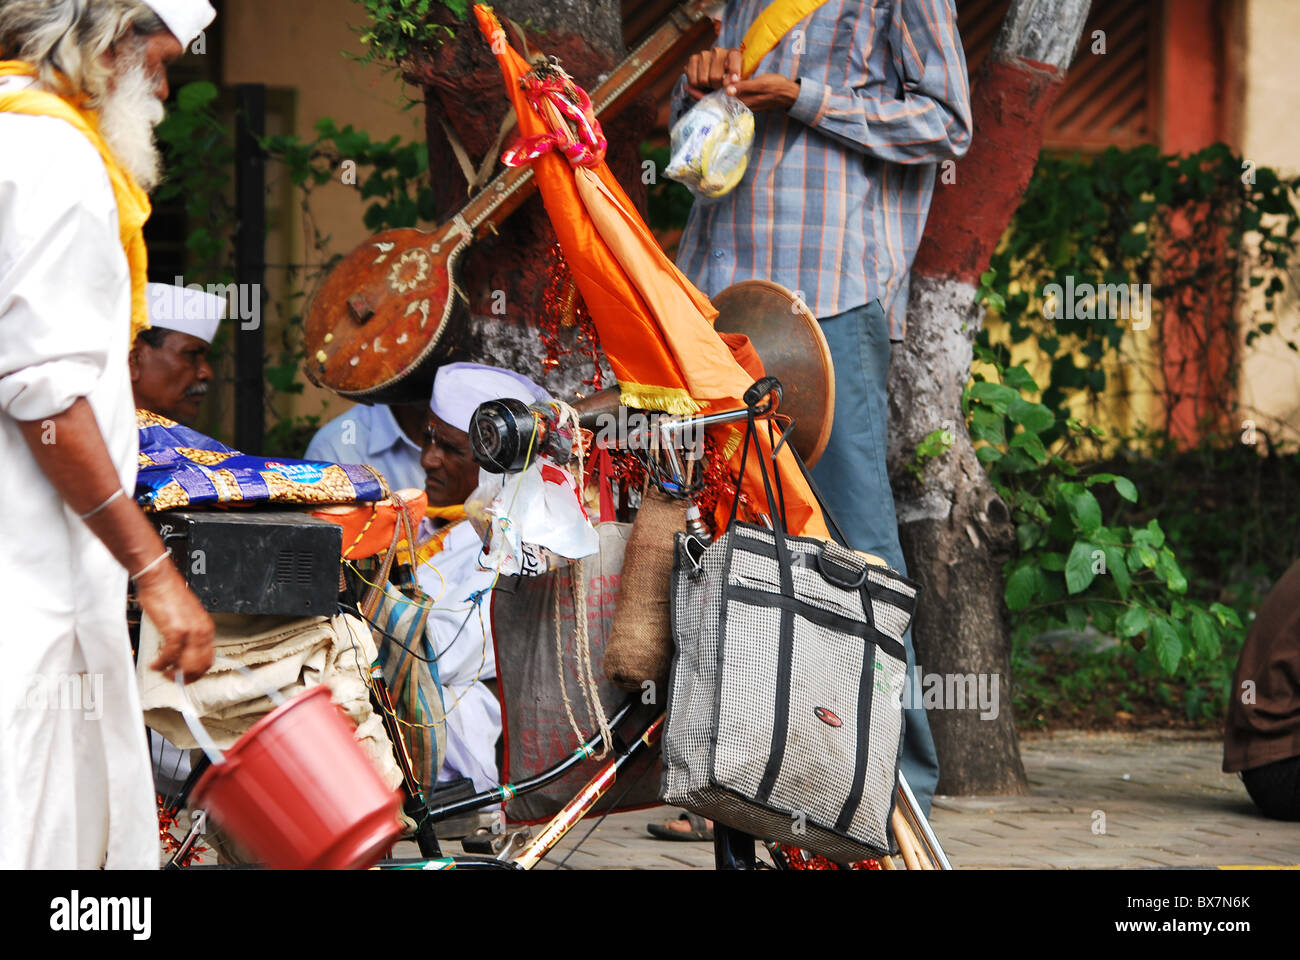 cycle with instrumental in saint dnyshwar palkhi - Stock Image